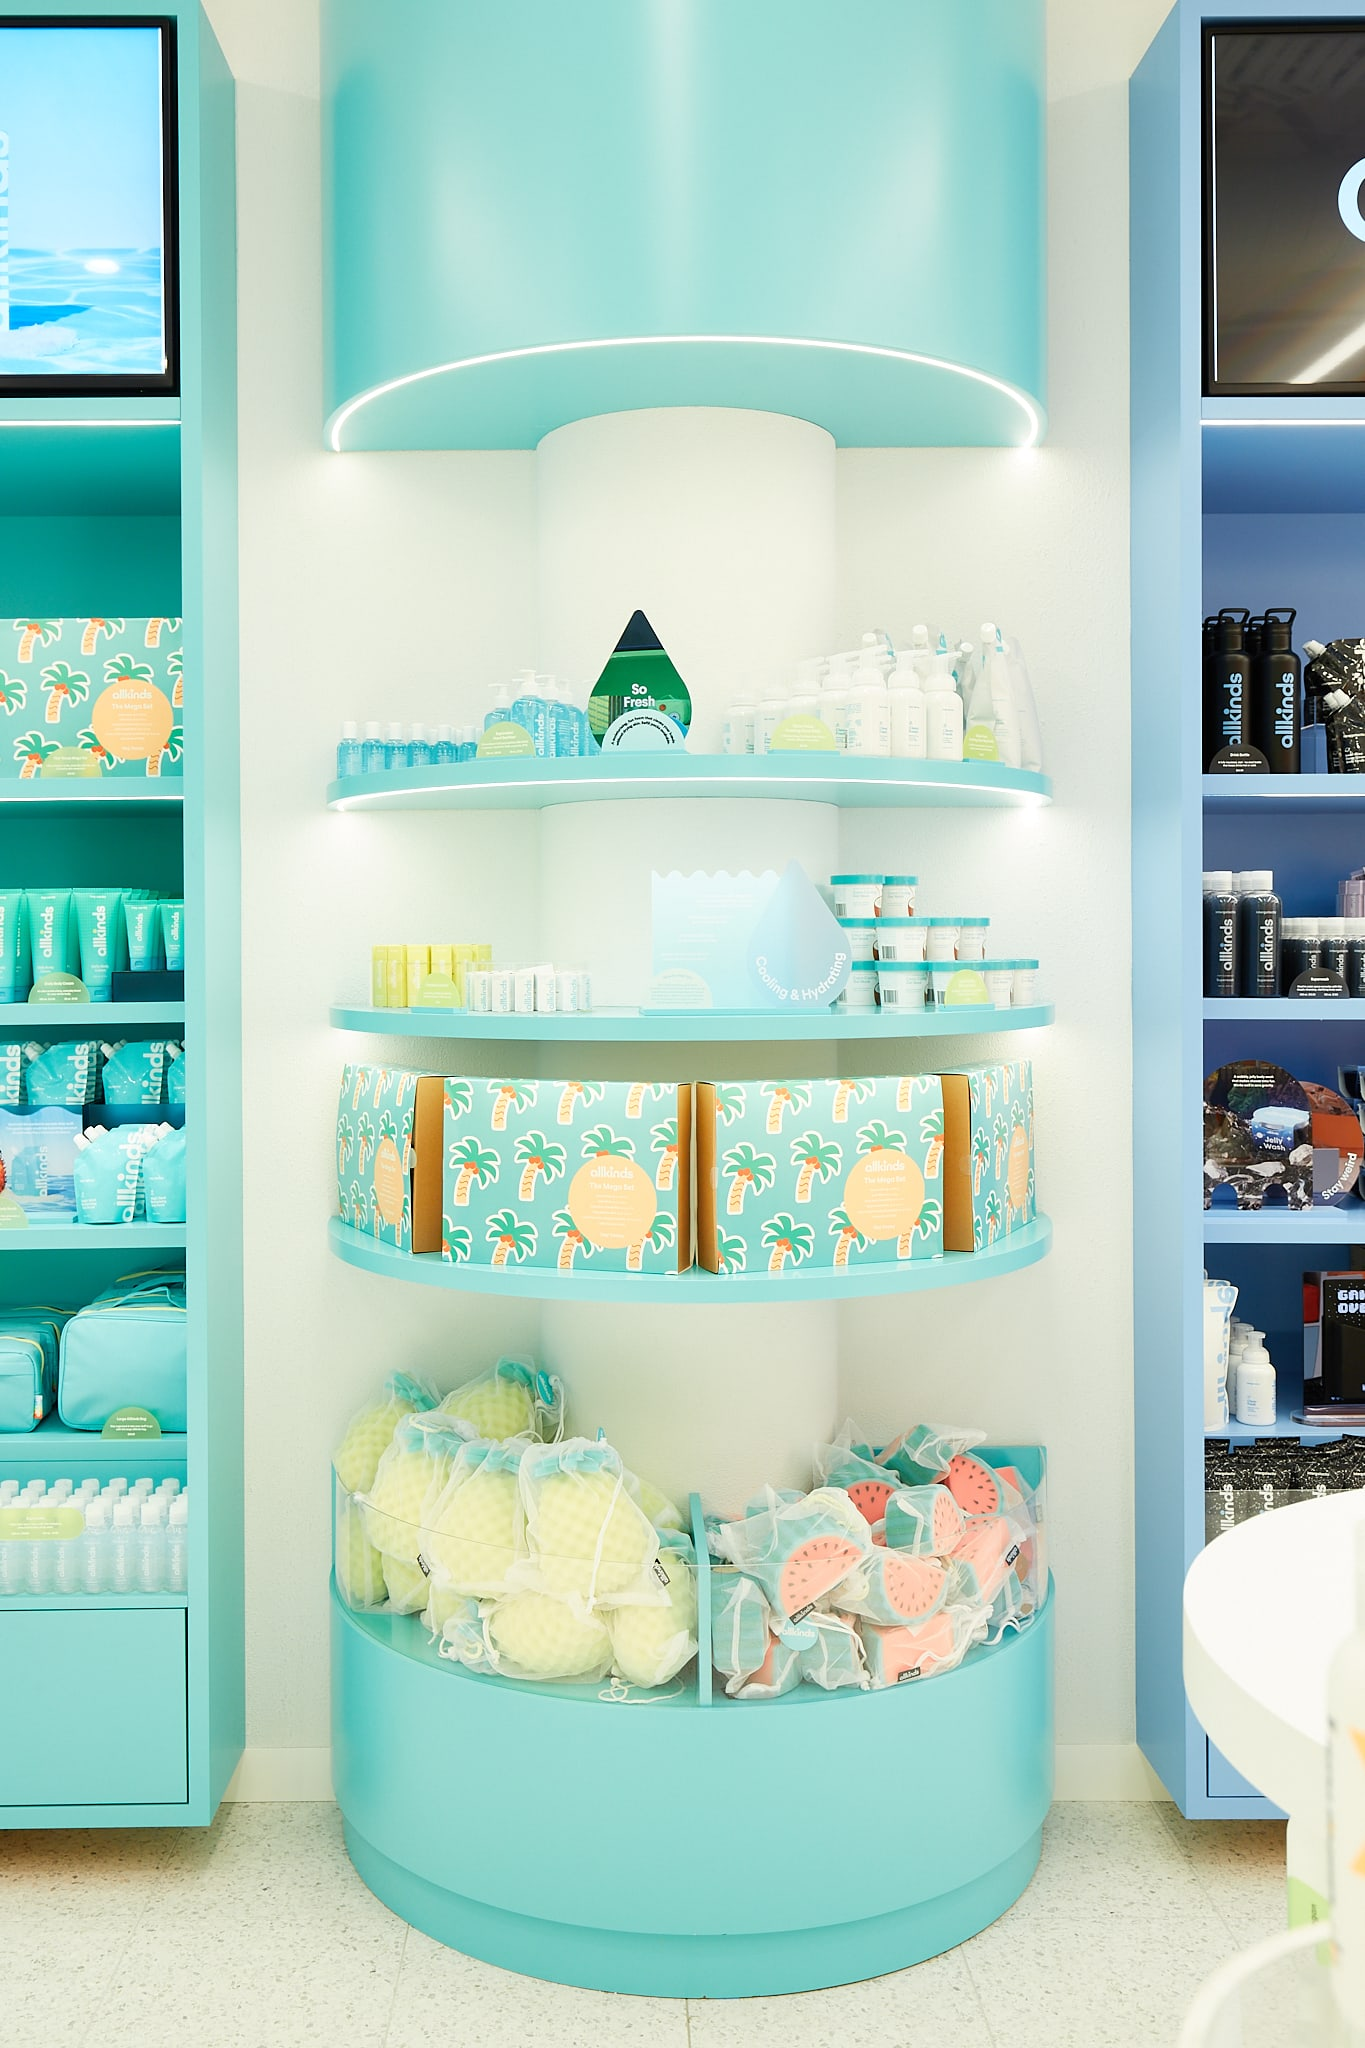 Allkinds Hey Vacay world display shelves with sets